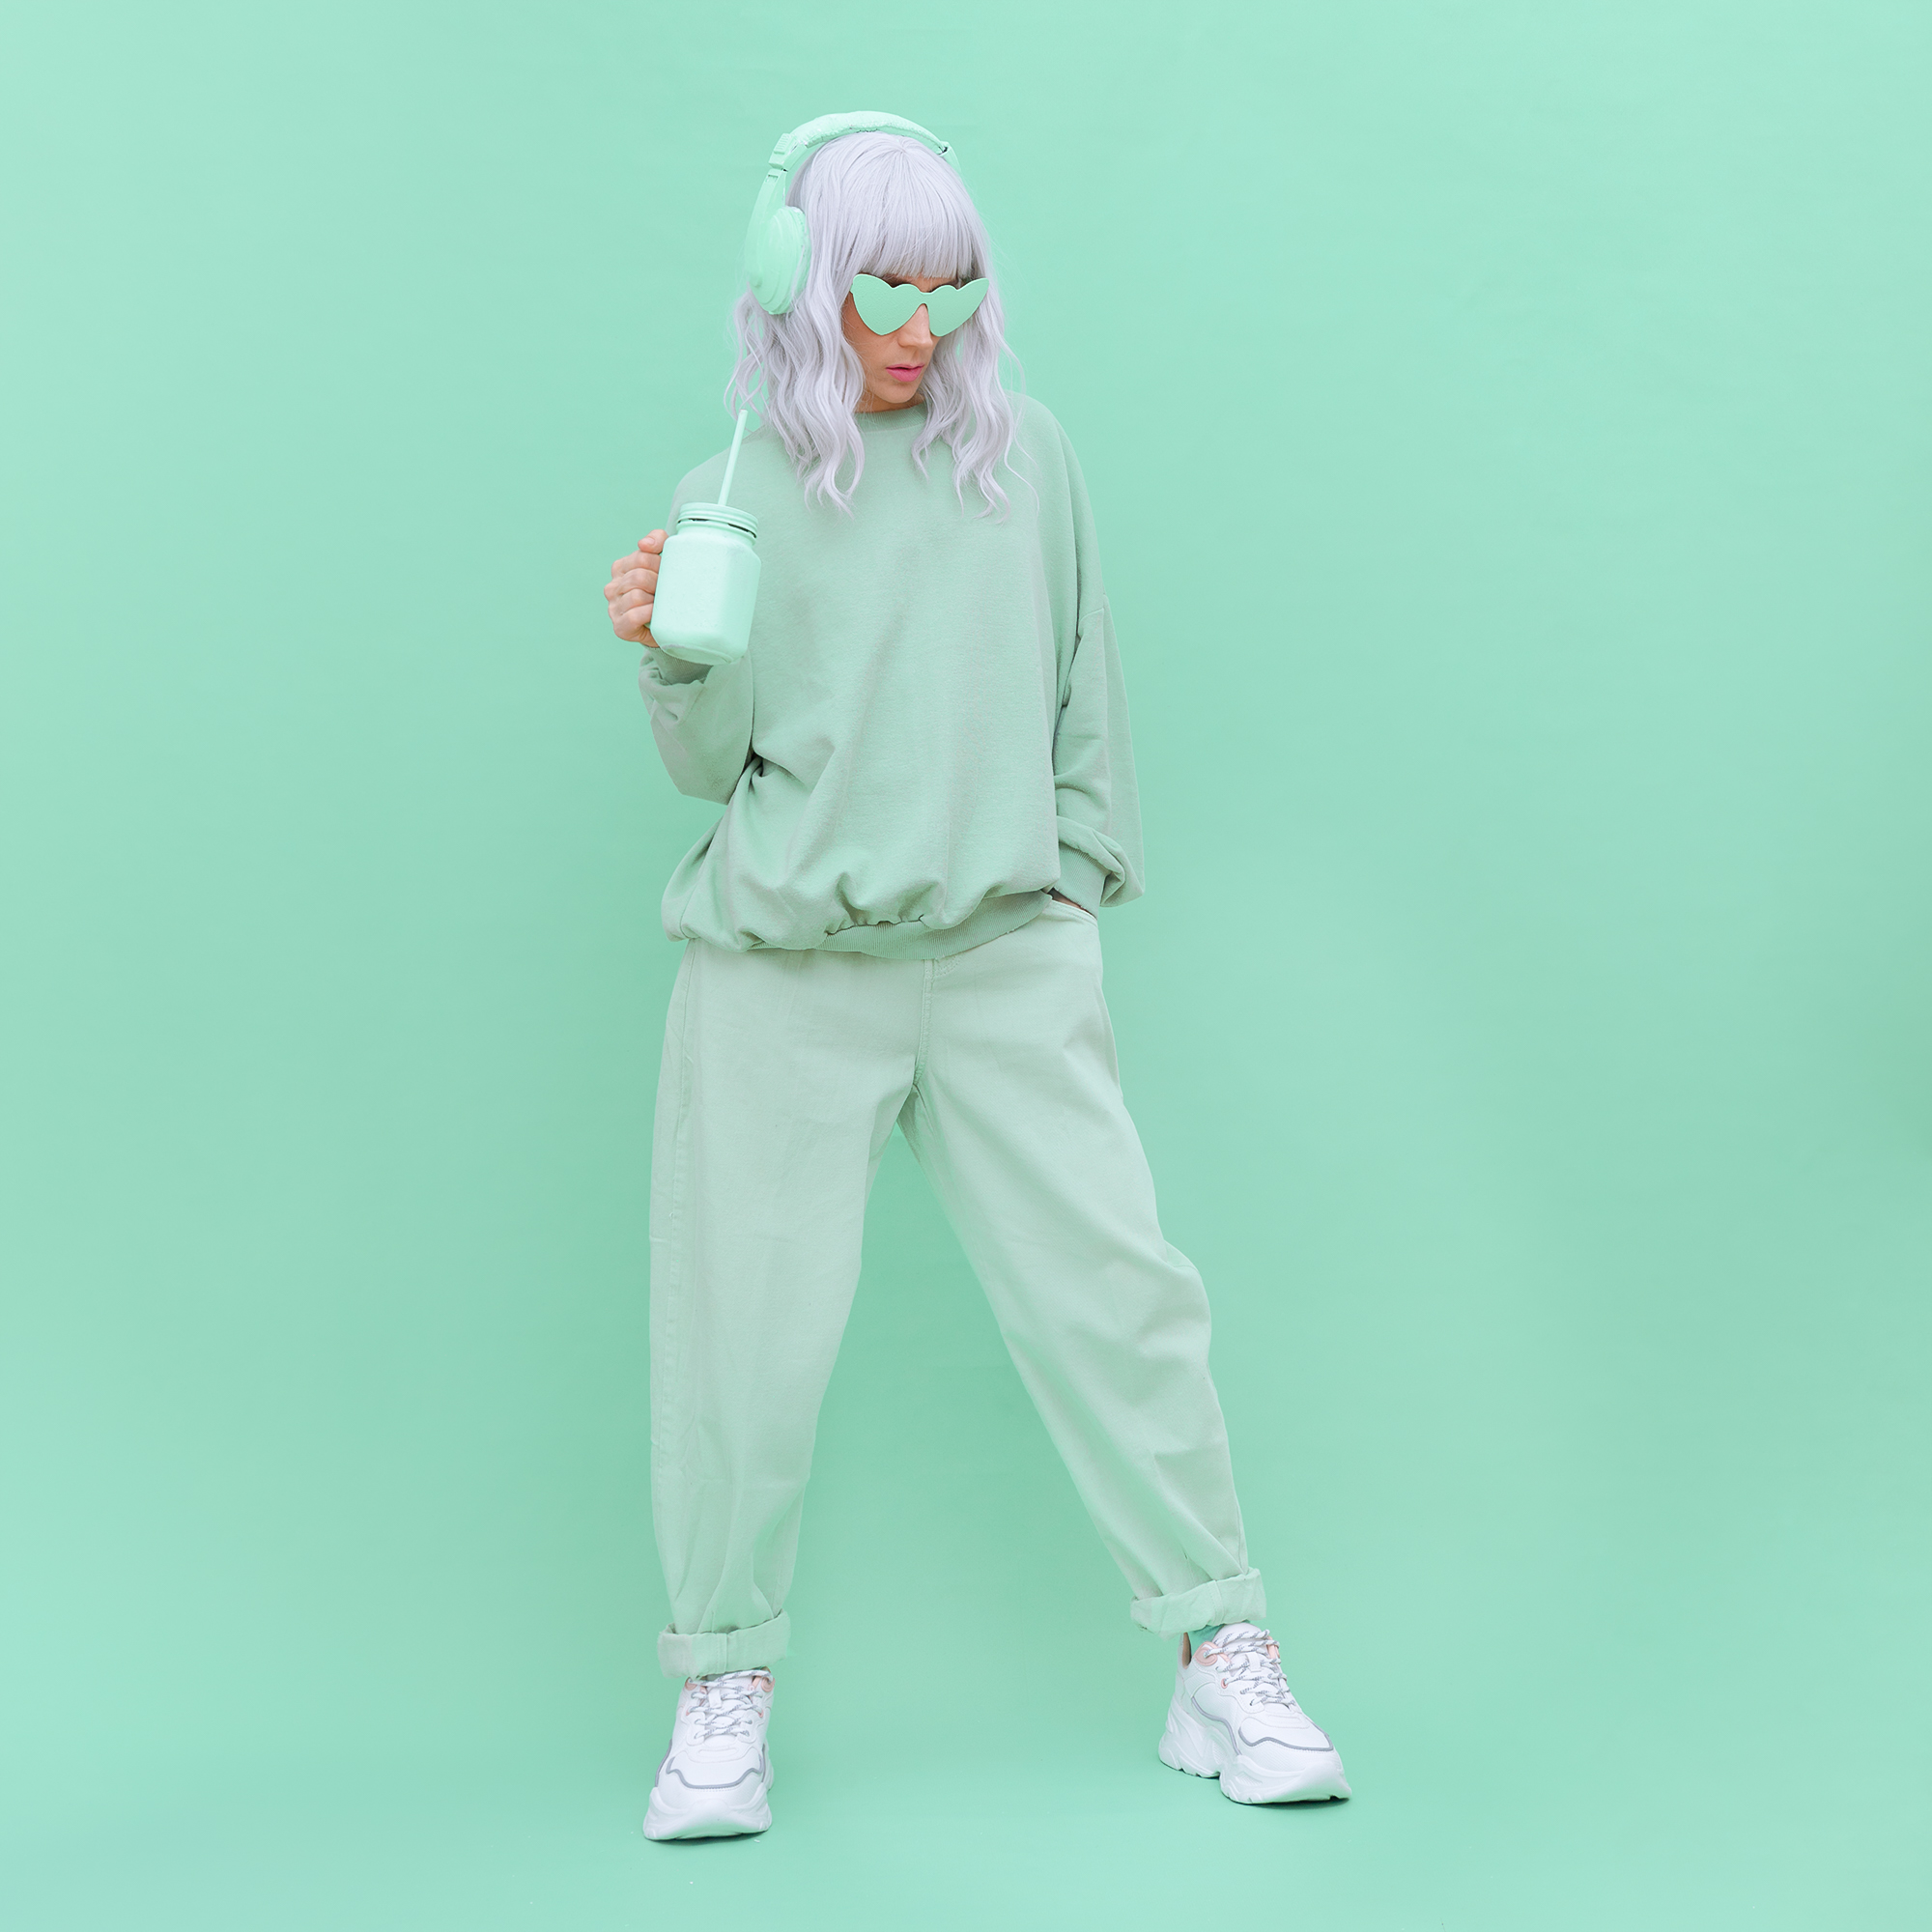 model wearing a track sweat suit and over-the-ear headphones while posing rhythmically standing up